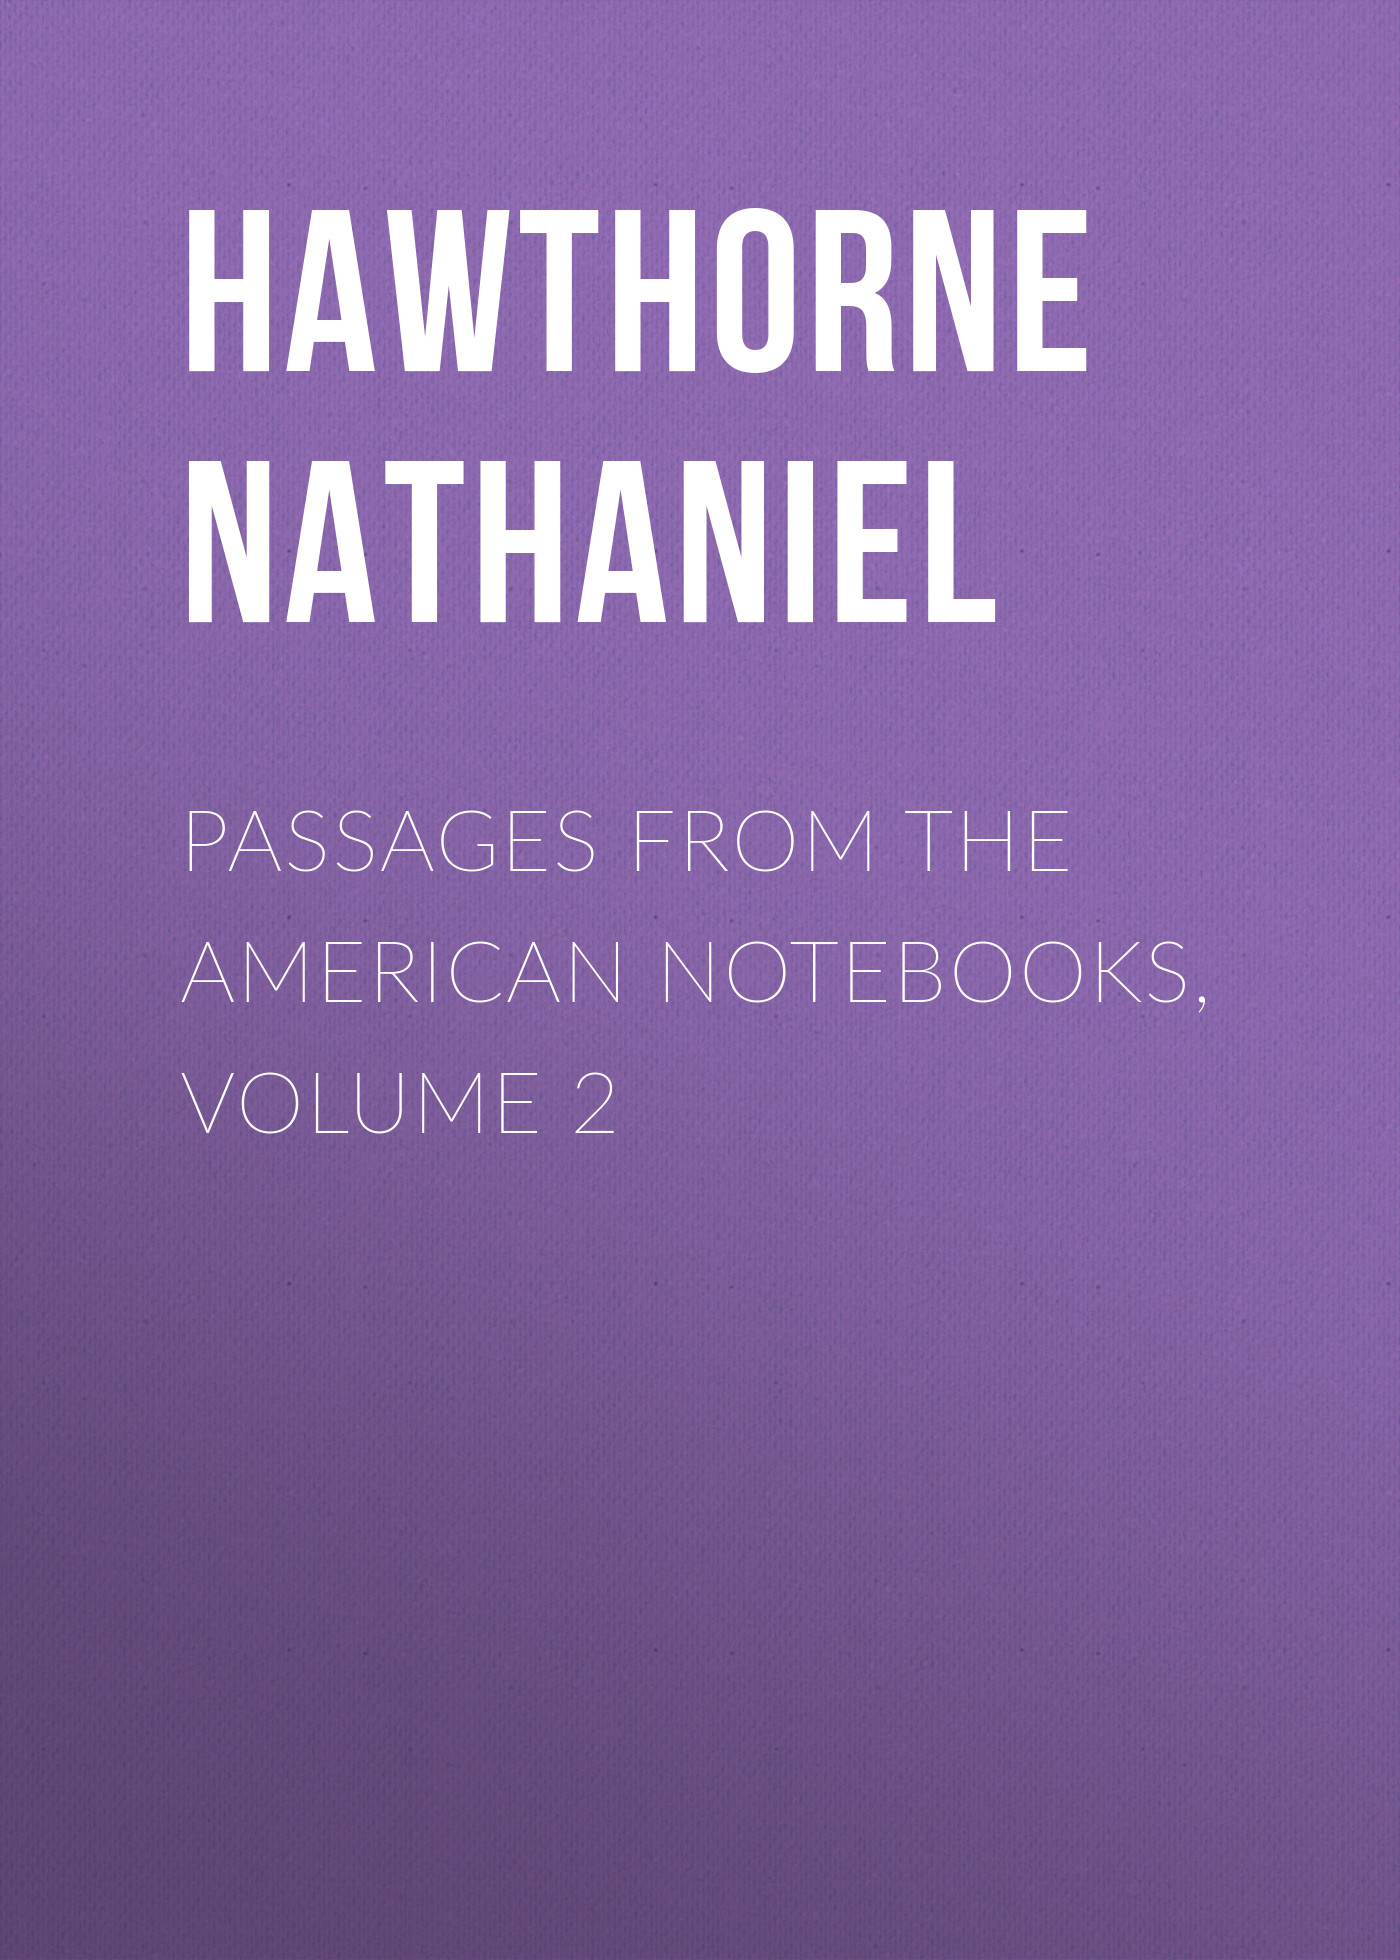 Hawthorne Nathaniel Passages from the American Notebooks, Volume 2 hawthorne nathaniel love letters of nathaniel hawthorne volume 1 of 2